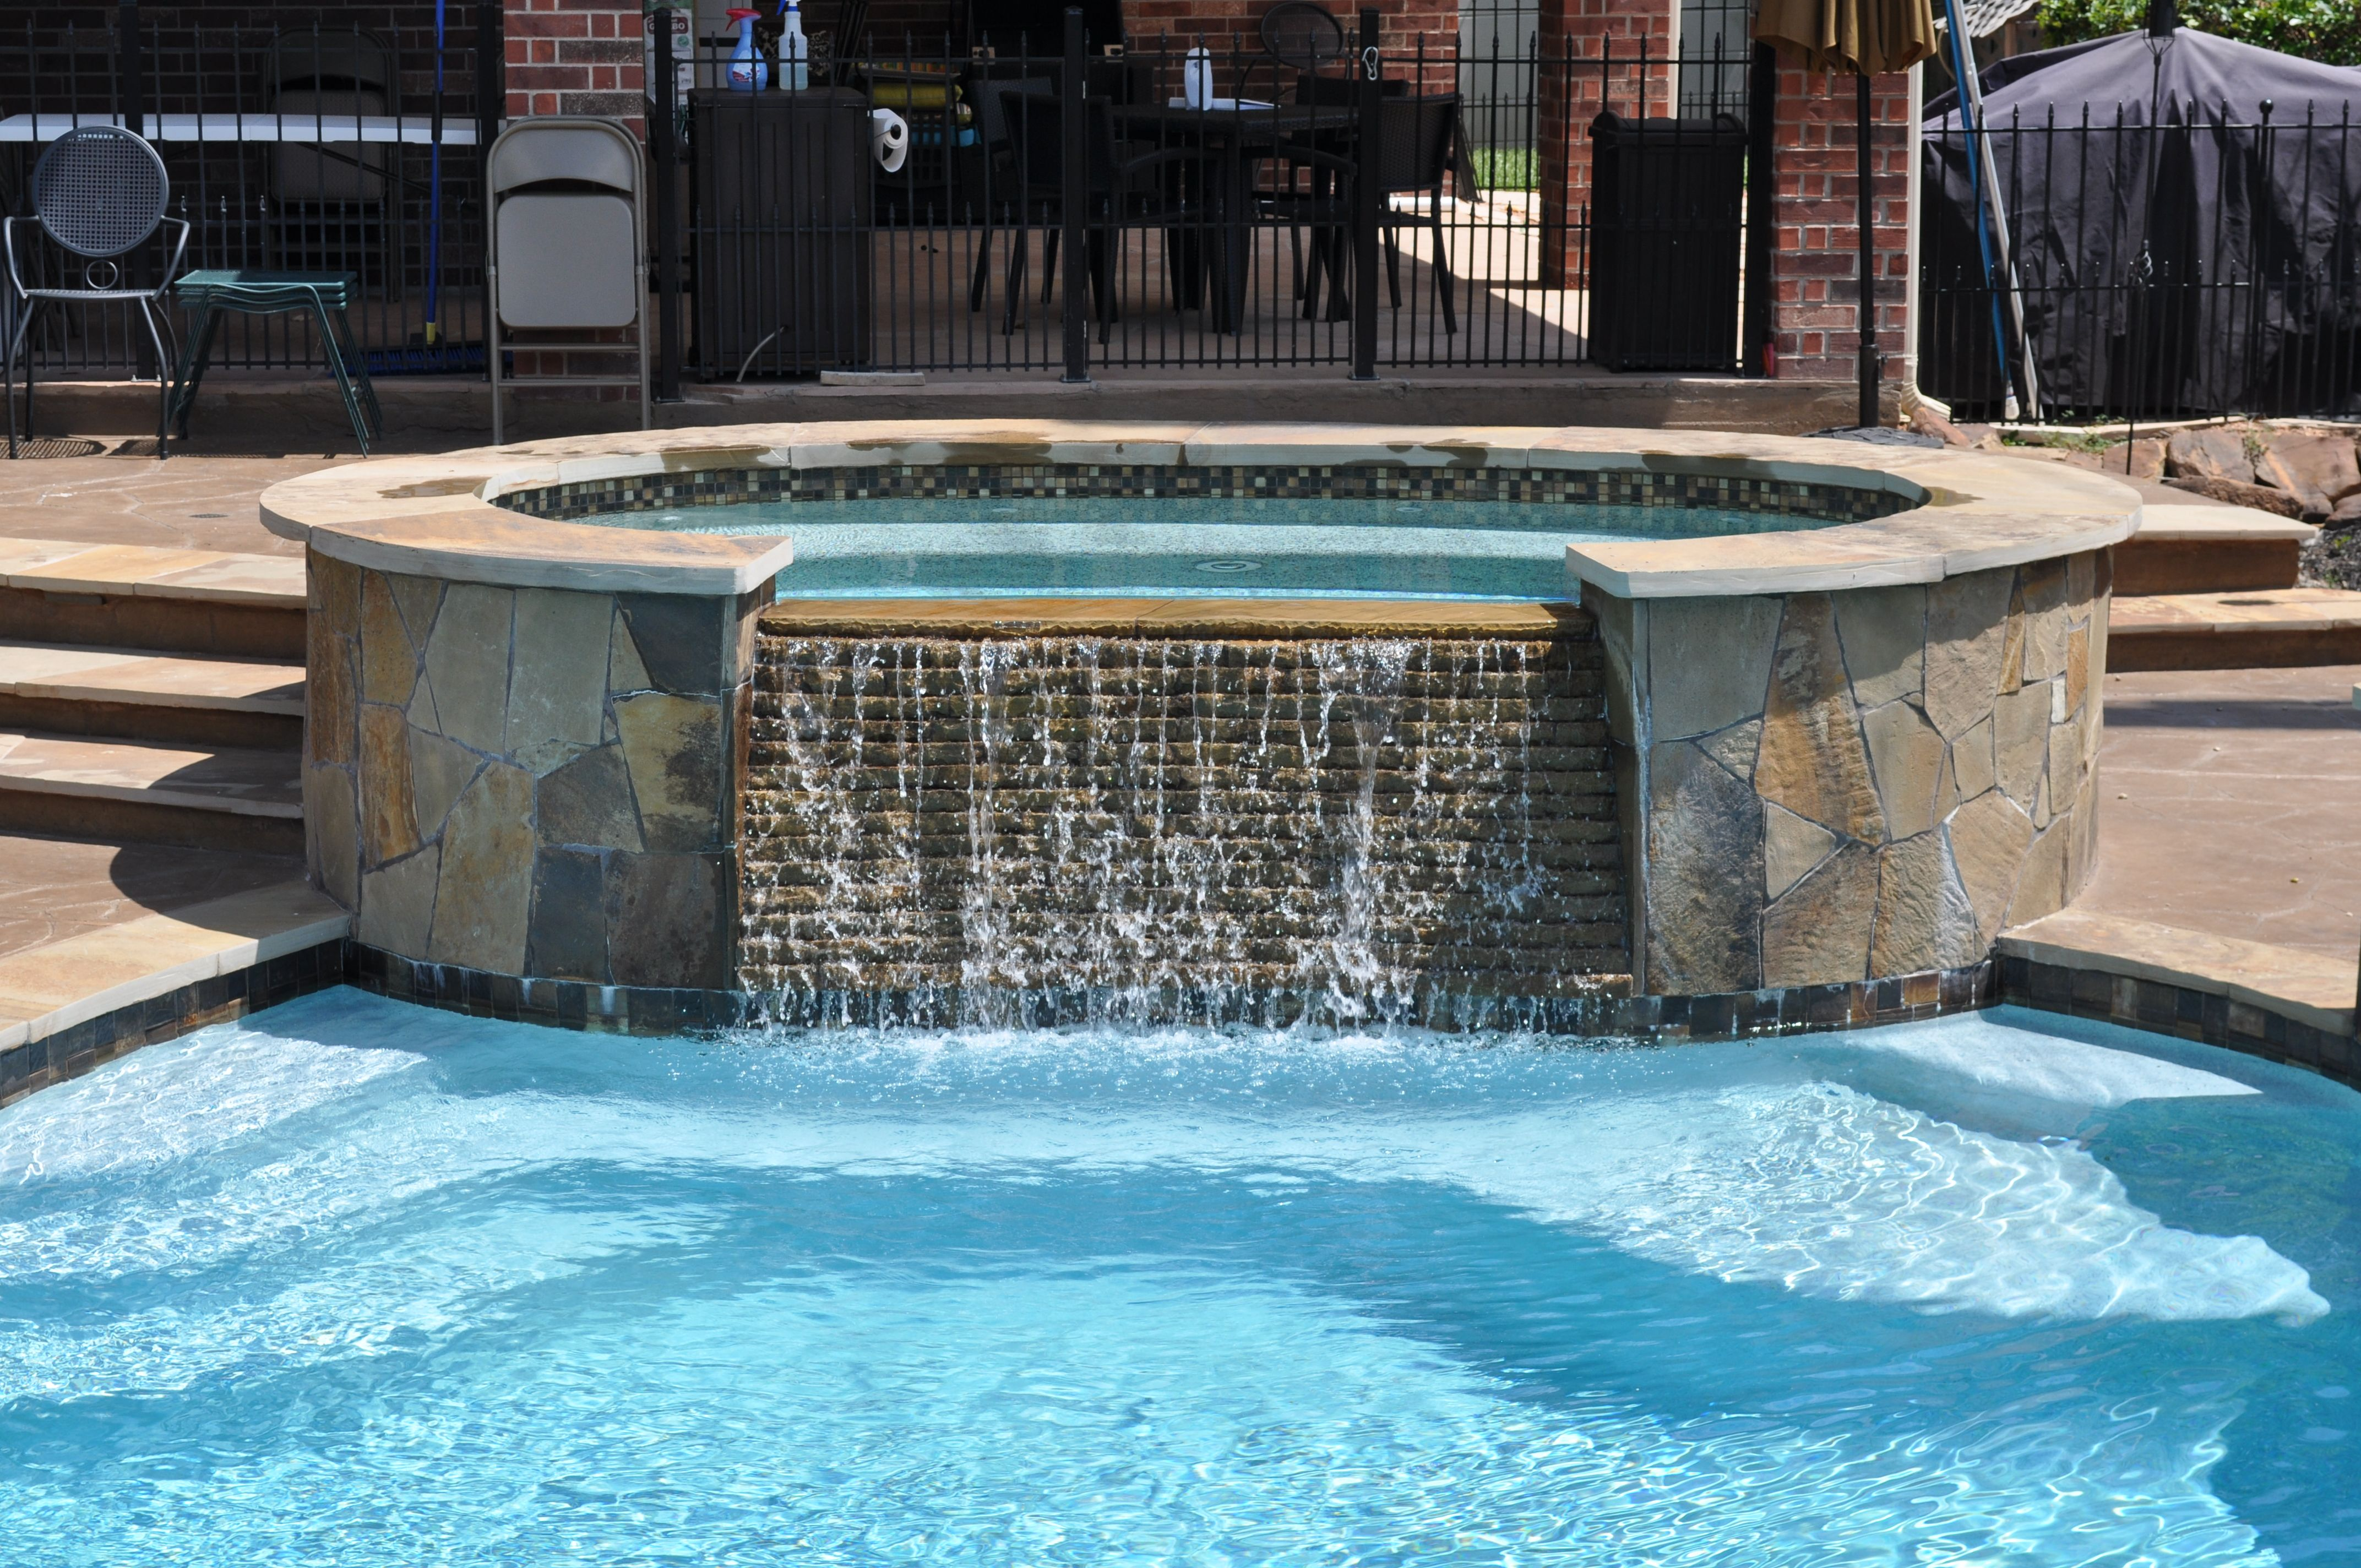 Pool And Spa With Step Down Deck Area In Stamped Overlay Concrete With Flagstone Steps Coping And Facing The Raised Pool Pool Coping Inground Pool Pricing